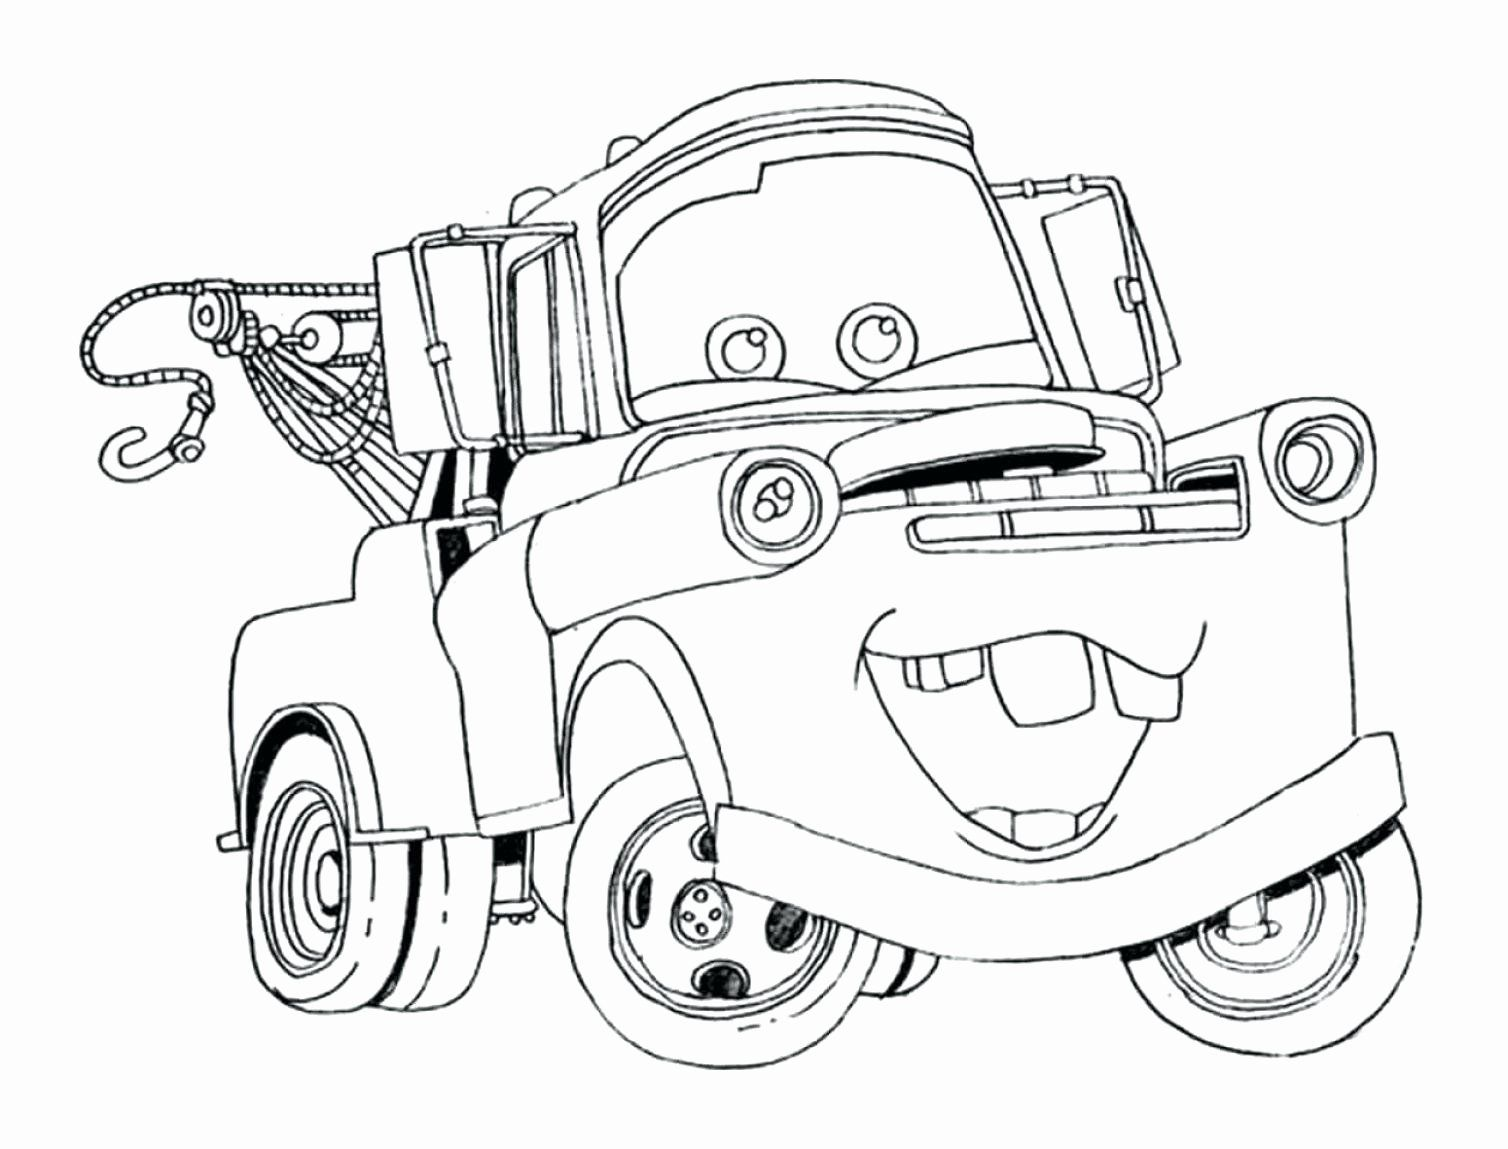 Lightning Mcqueen Printable Coloring Pages Unique Coloring Free Printable Tow Mater Colori In 2020 Disney Coloring Pages Free Disney Coloring Pages Cars Coloring Pages